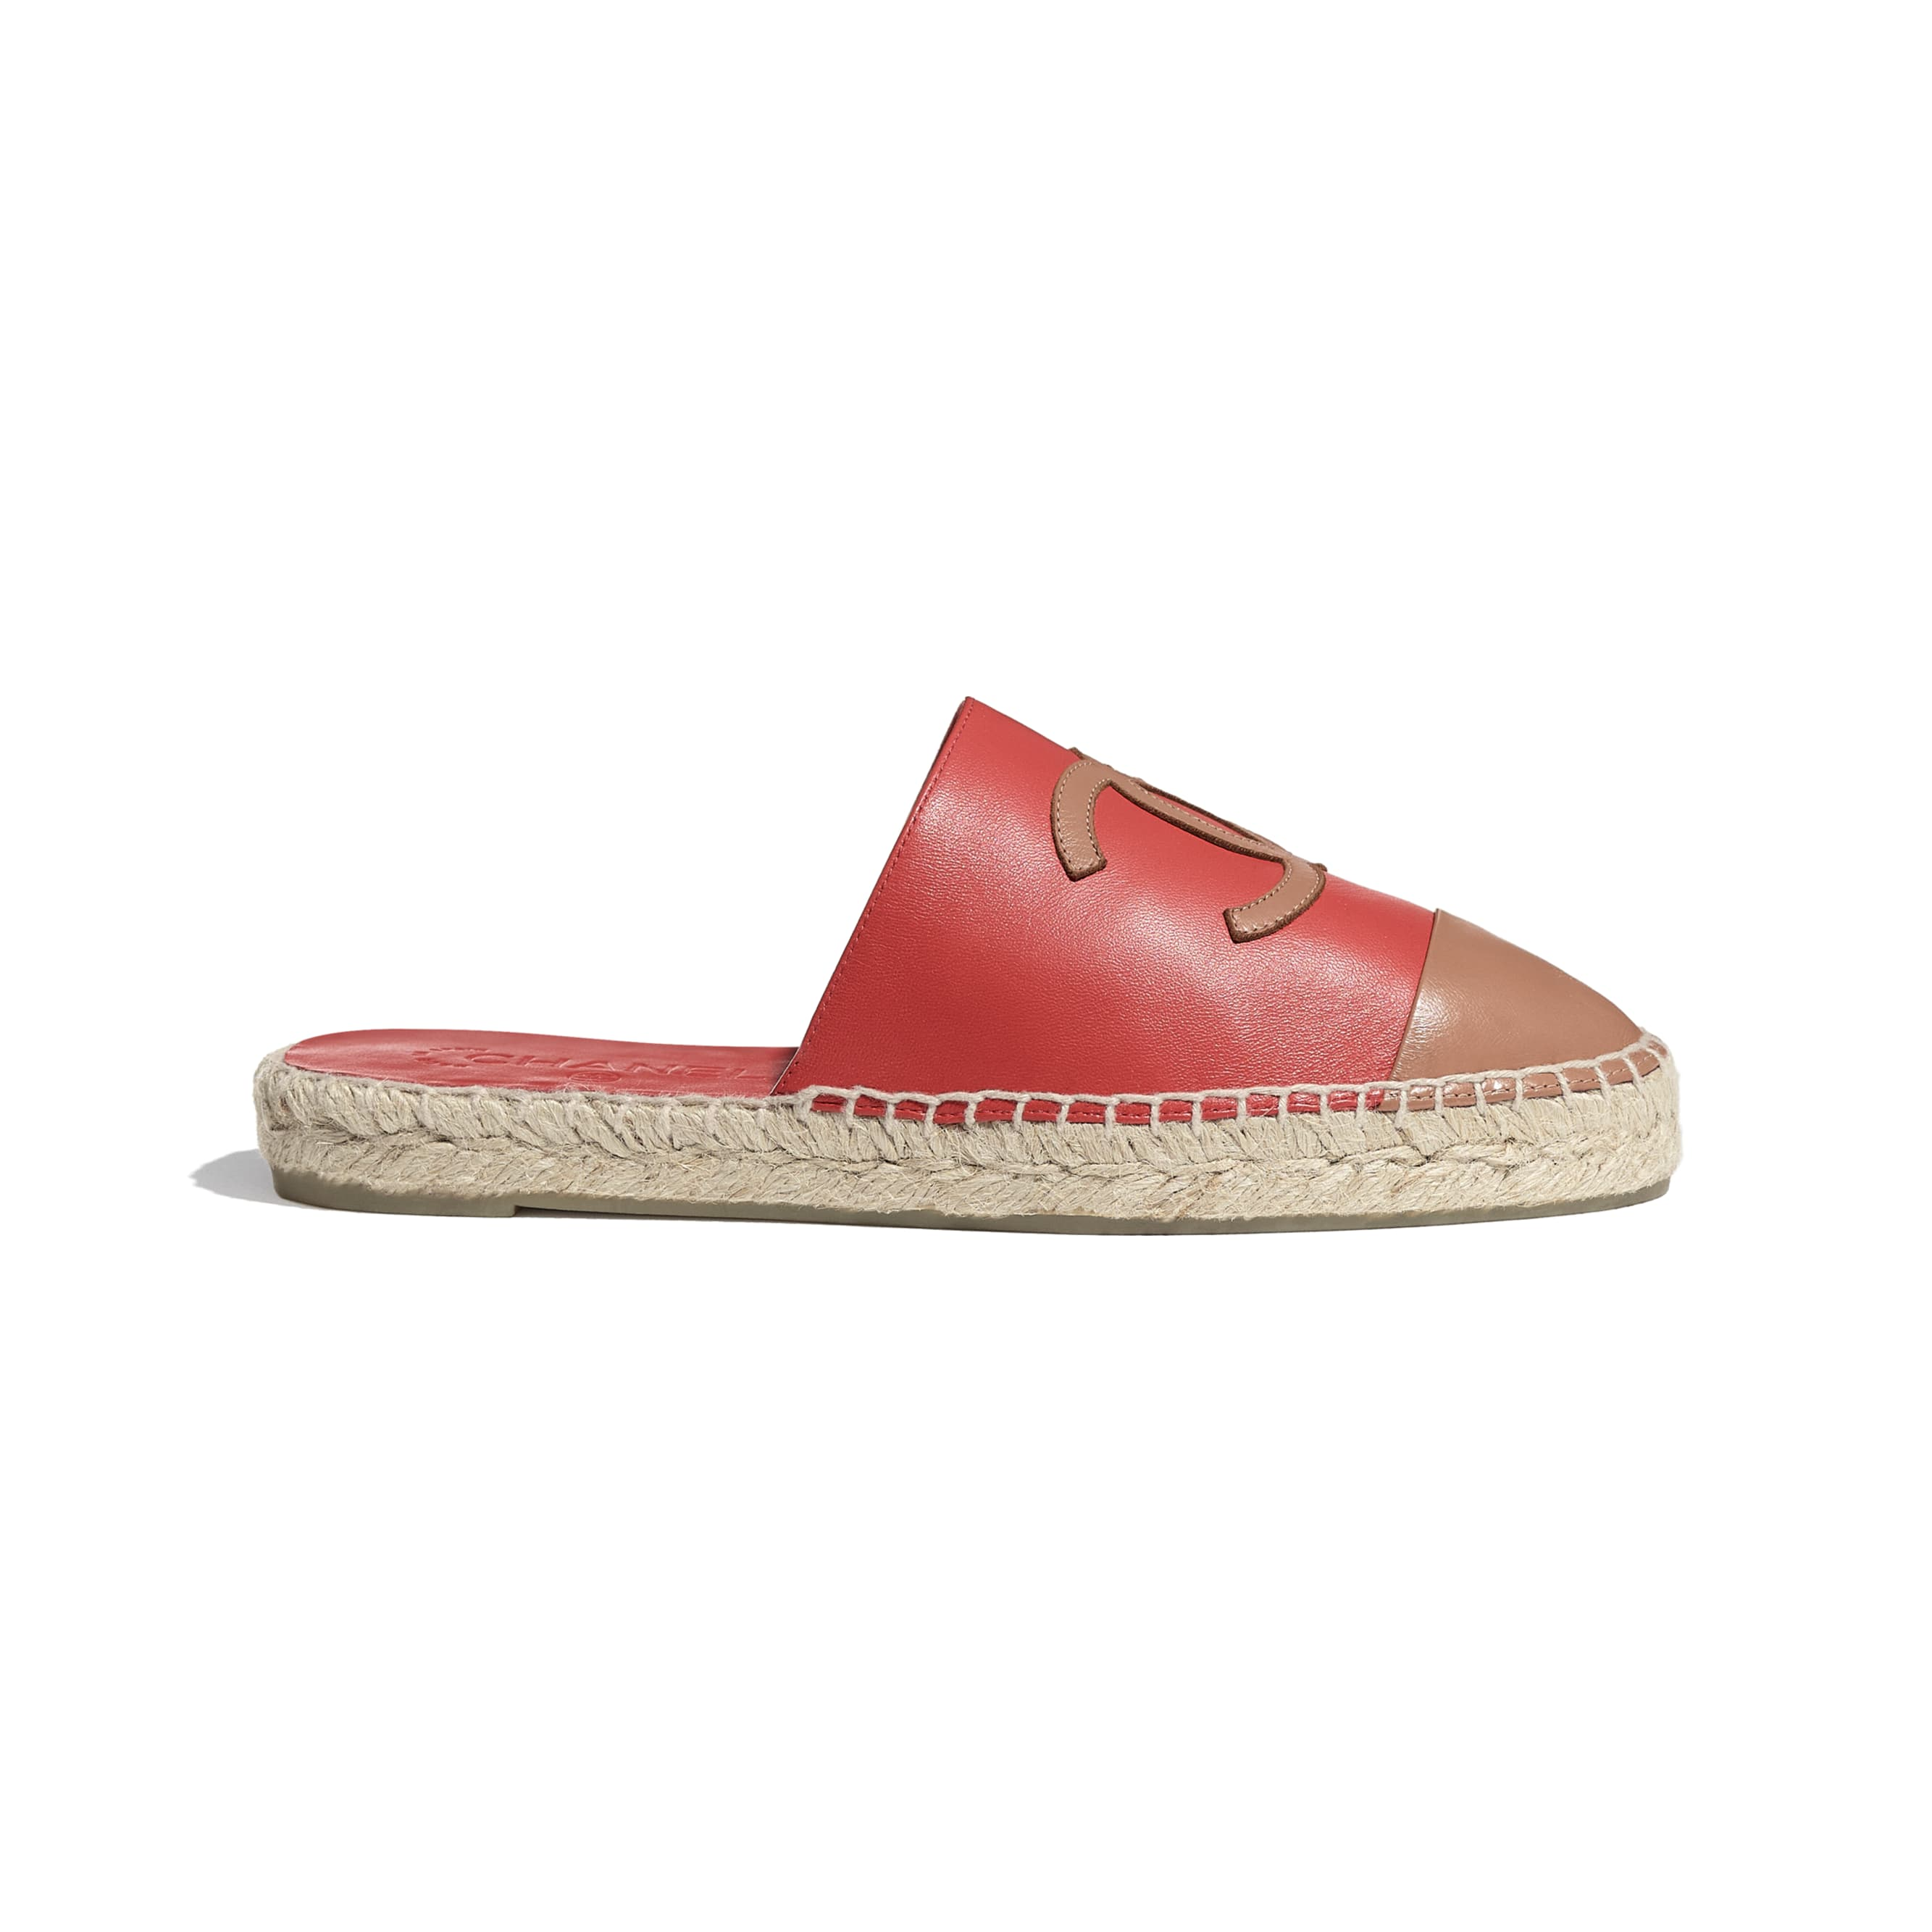 Espadrilles - Red & Brown - Lambskin - CHANEL - Default view - see standard sized version